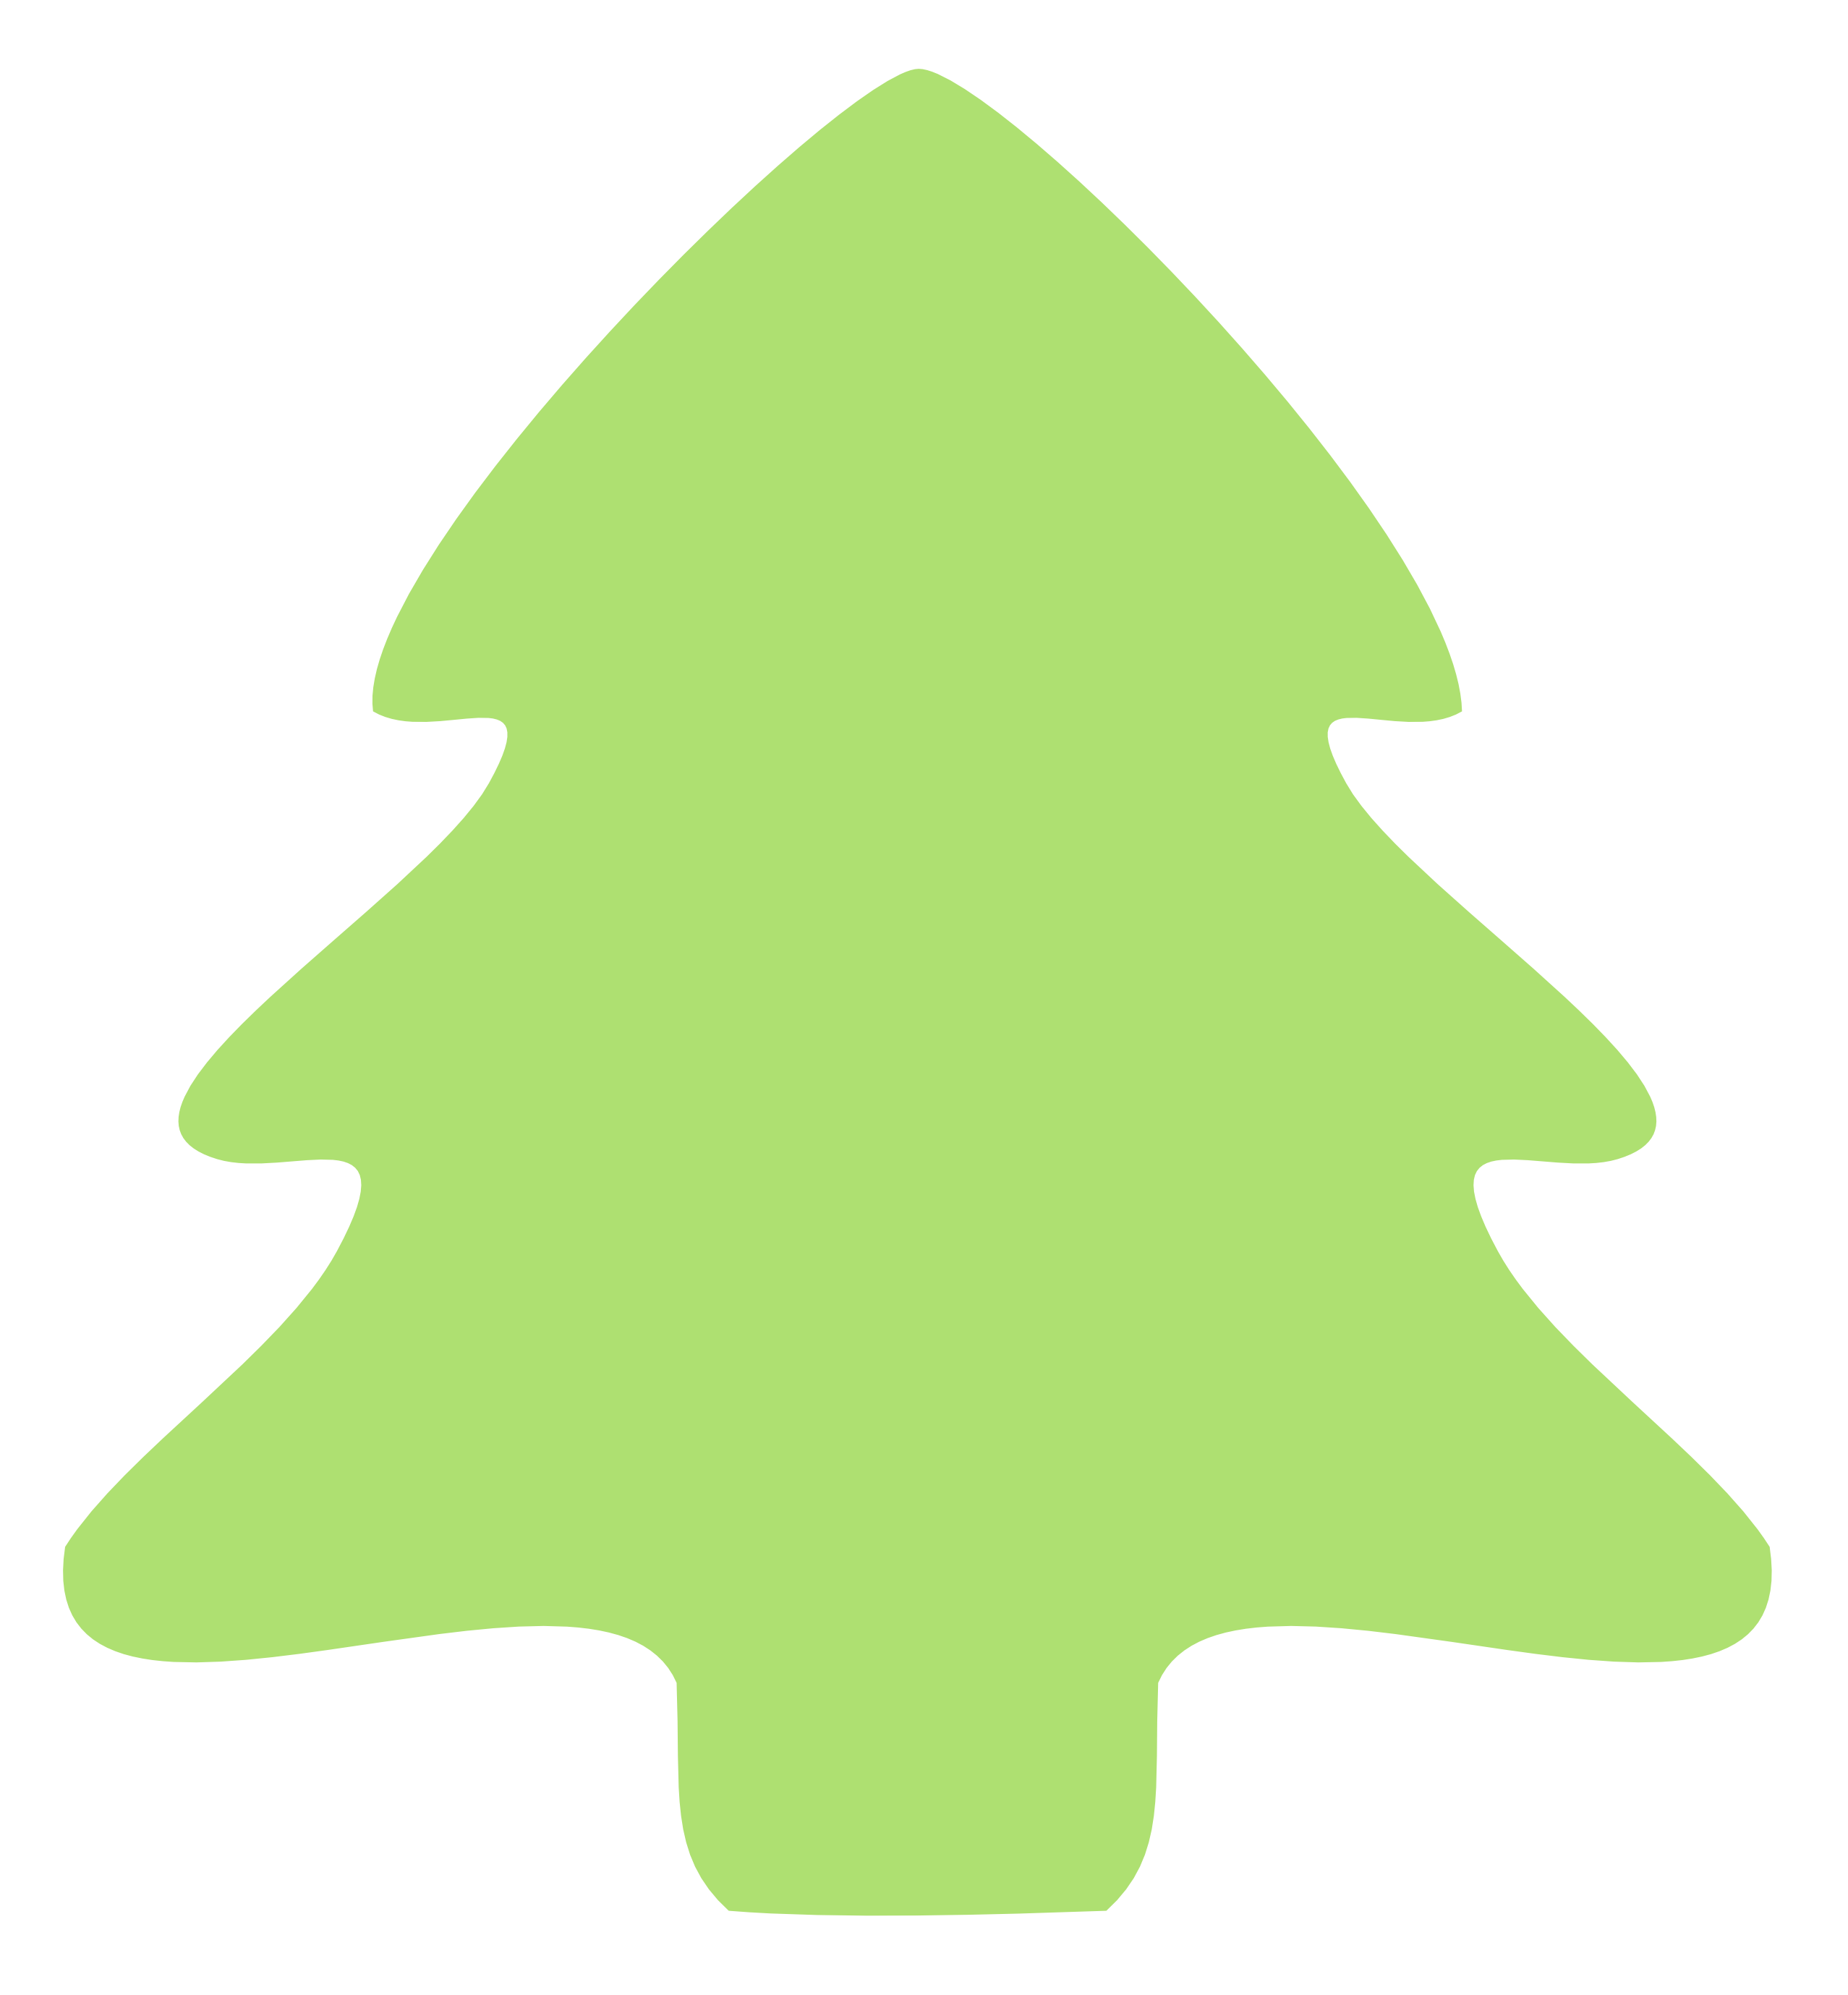 Christmas tree image clipart picture library stock Clipart simple christmas tree - ClipartFest picture library stock